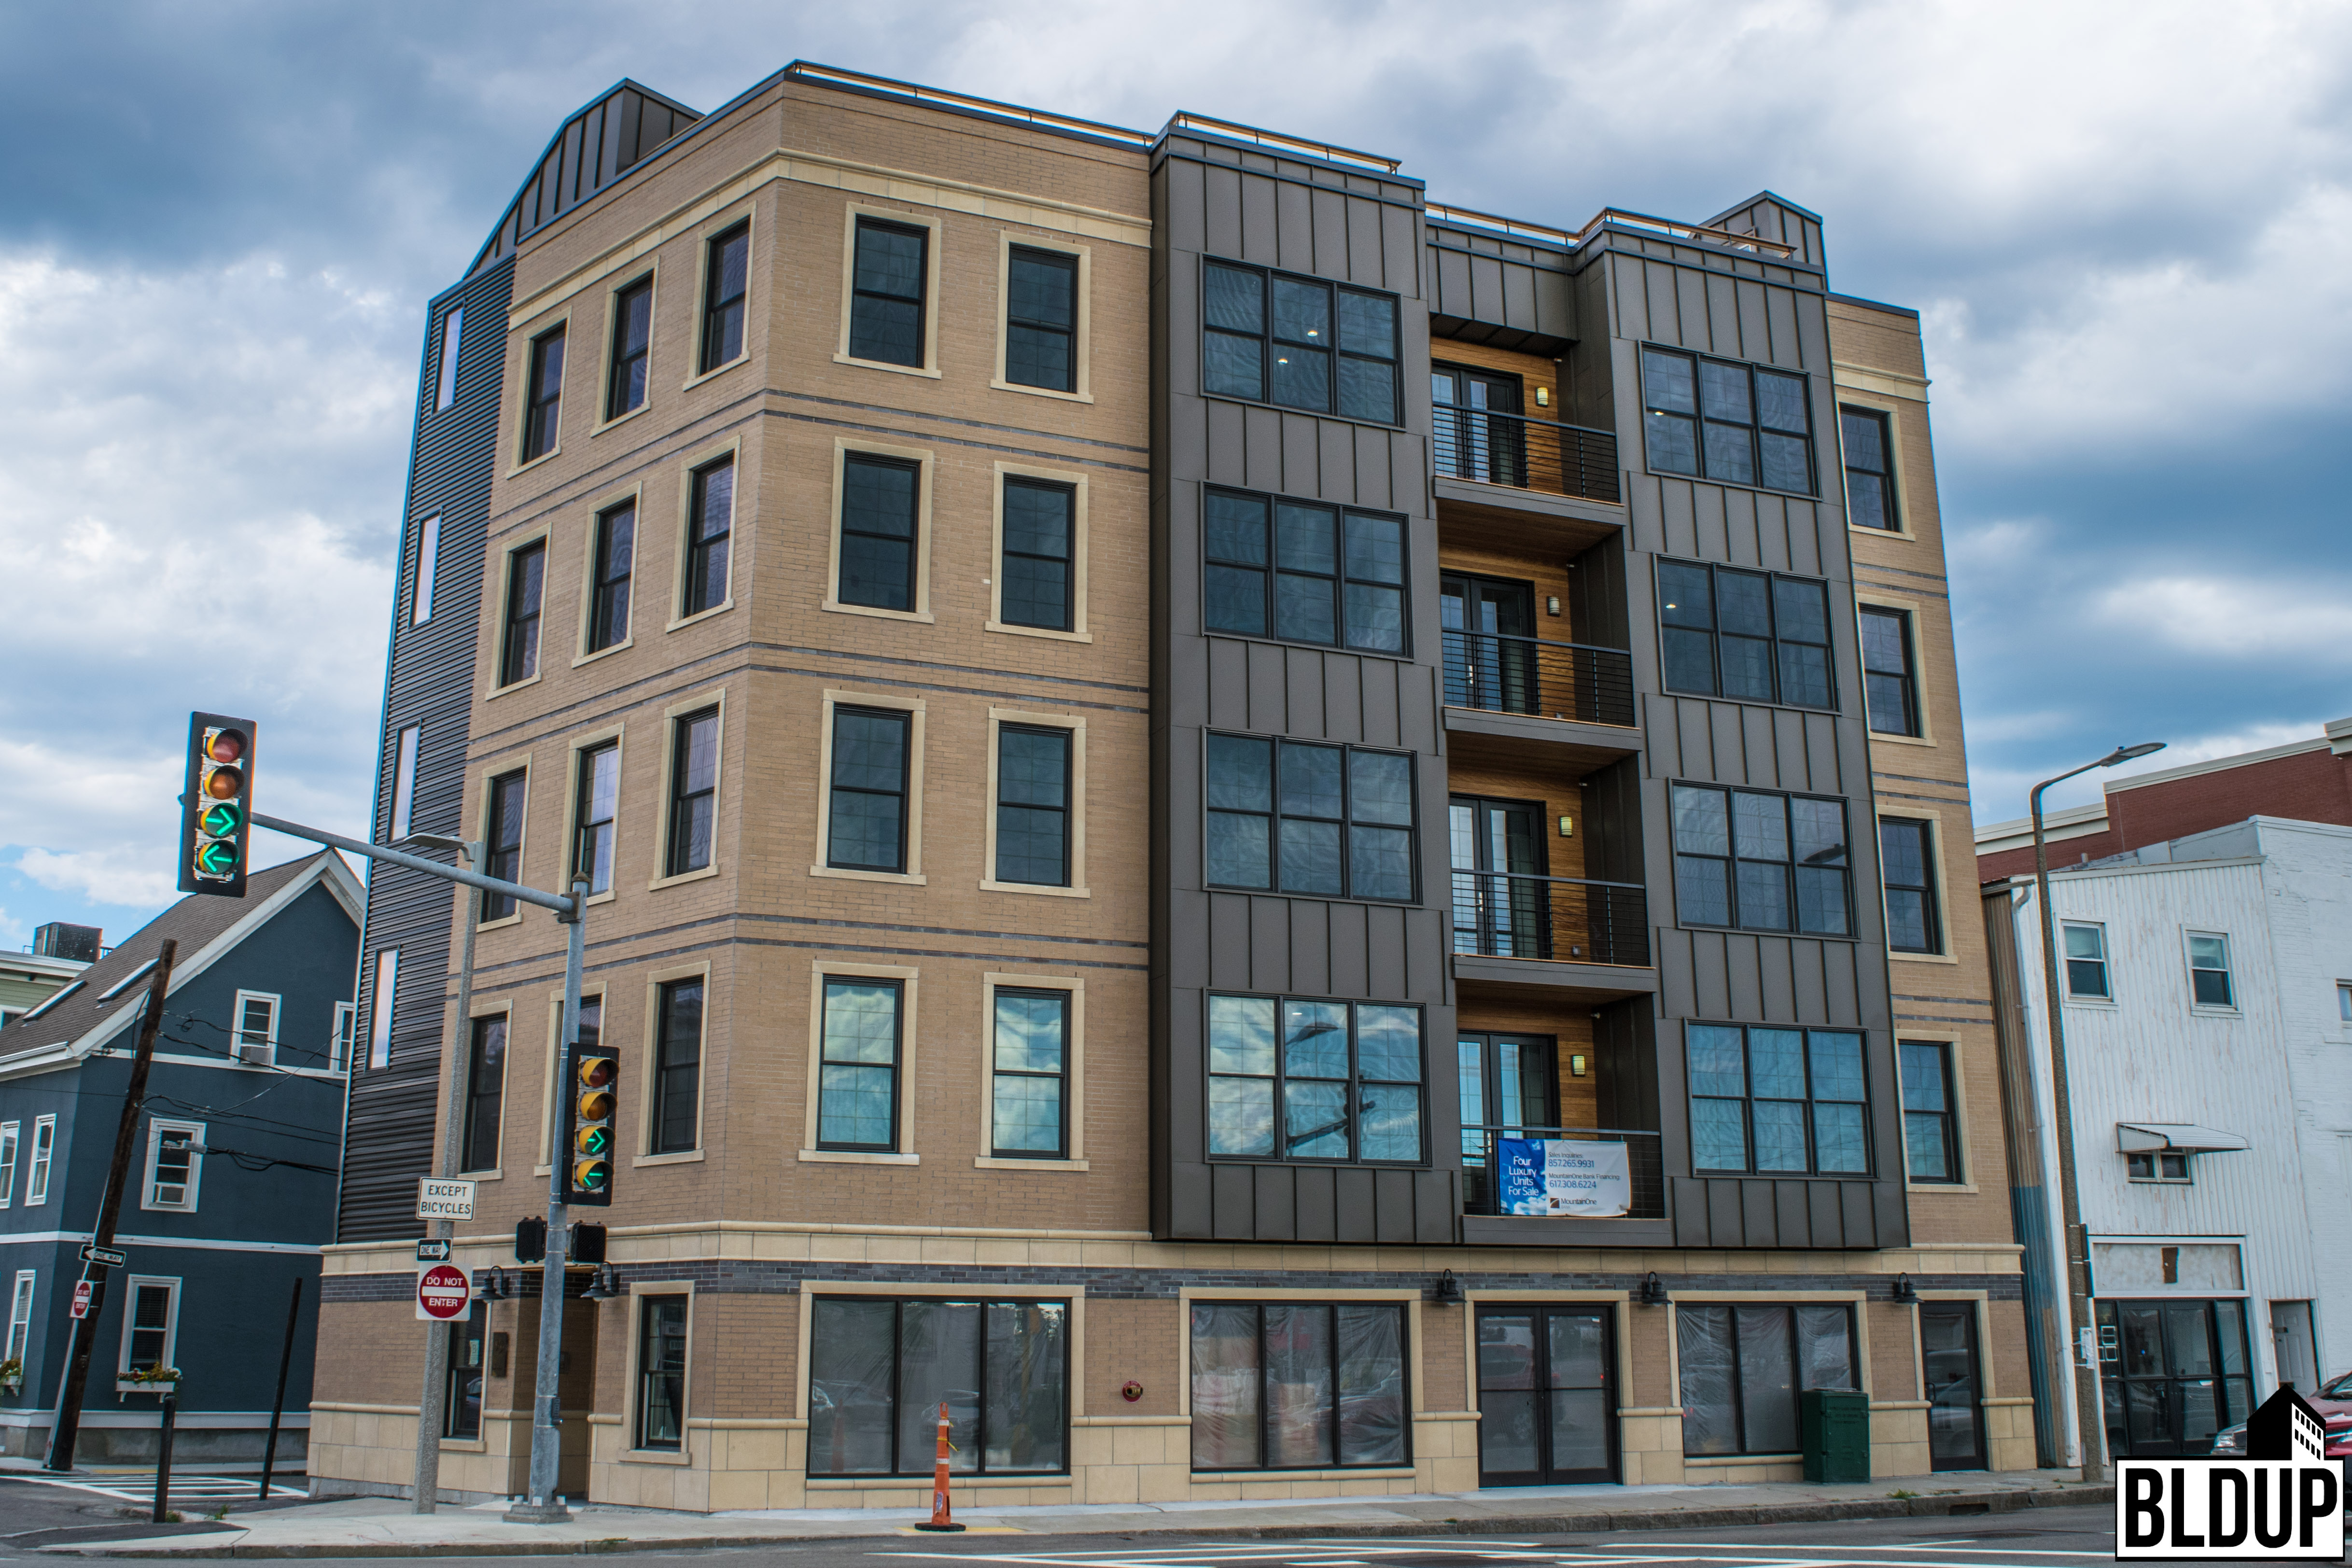 99 d street south boston real estate office development construction preservation project a   d ventures rendering